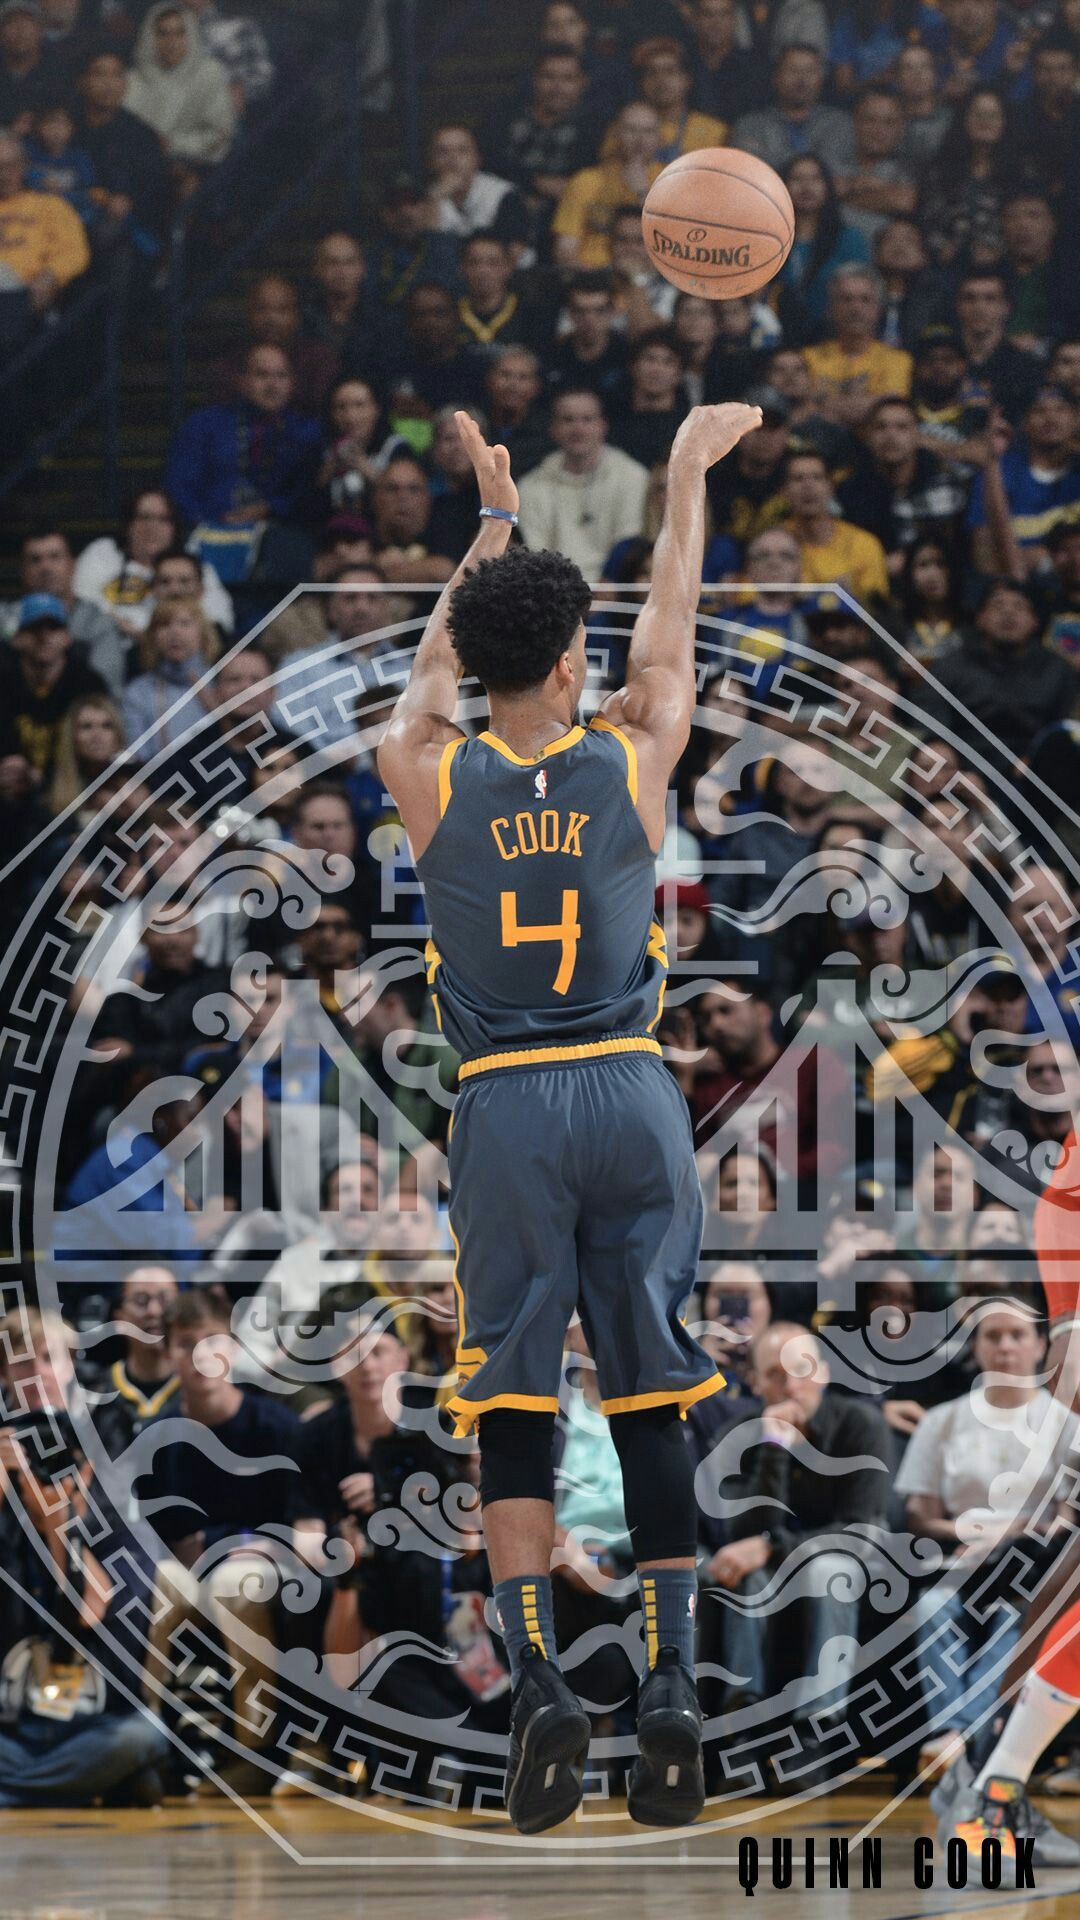 Quin Cook wallpaper is that how you spell his first name NBA 1080x1920